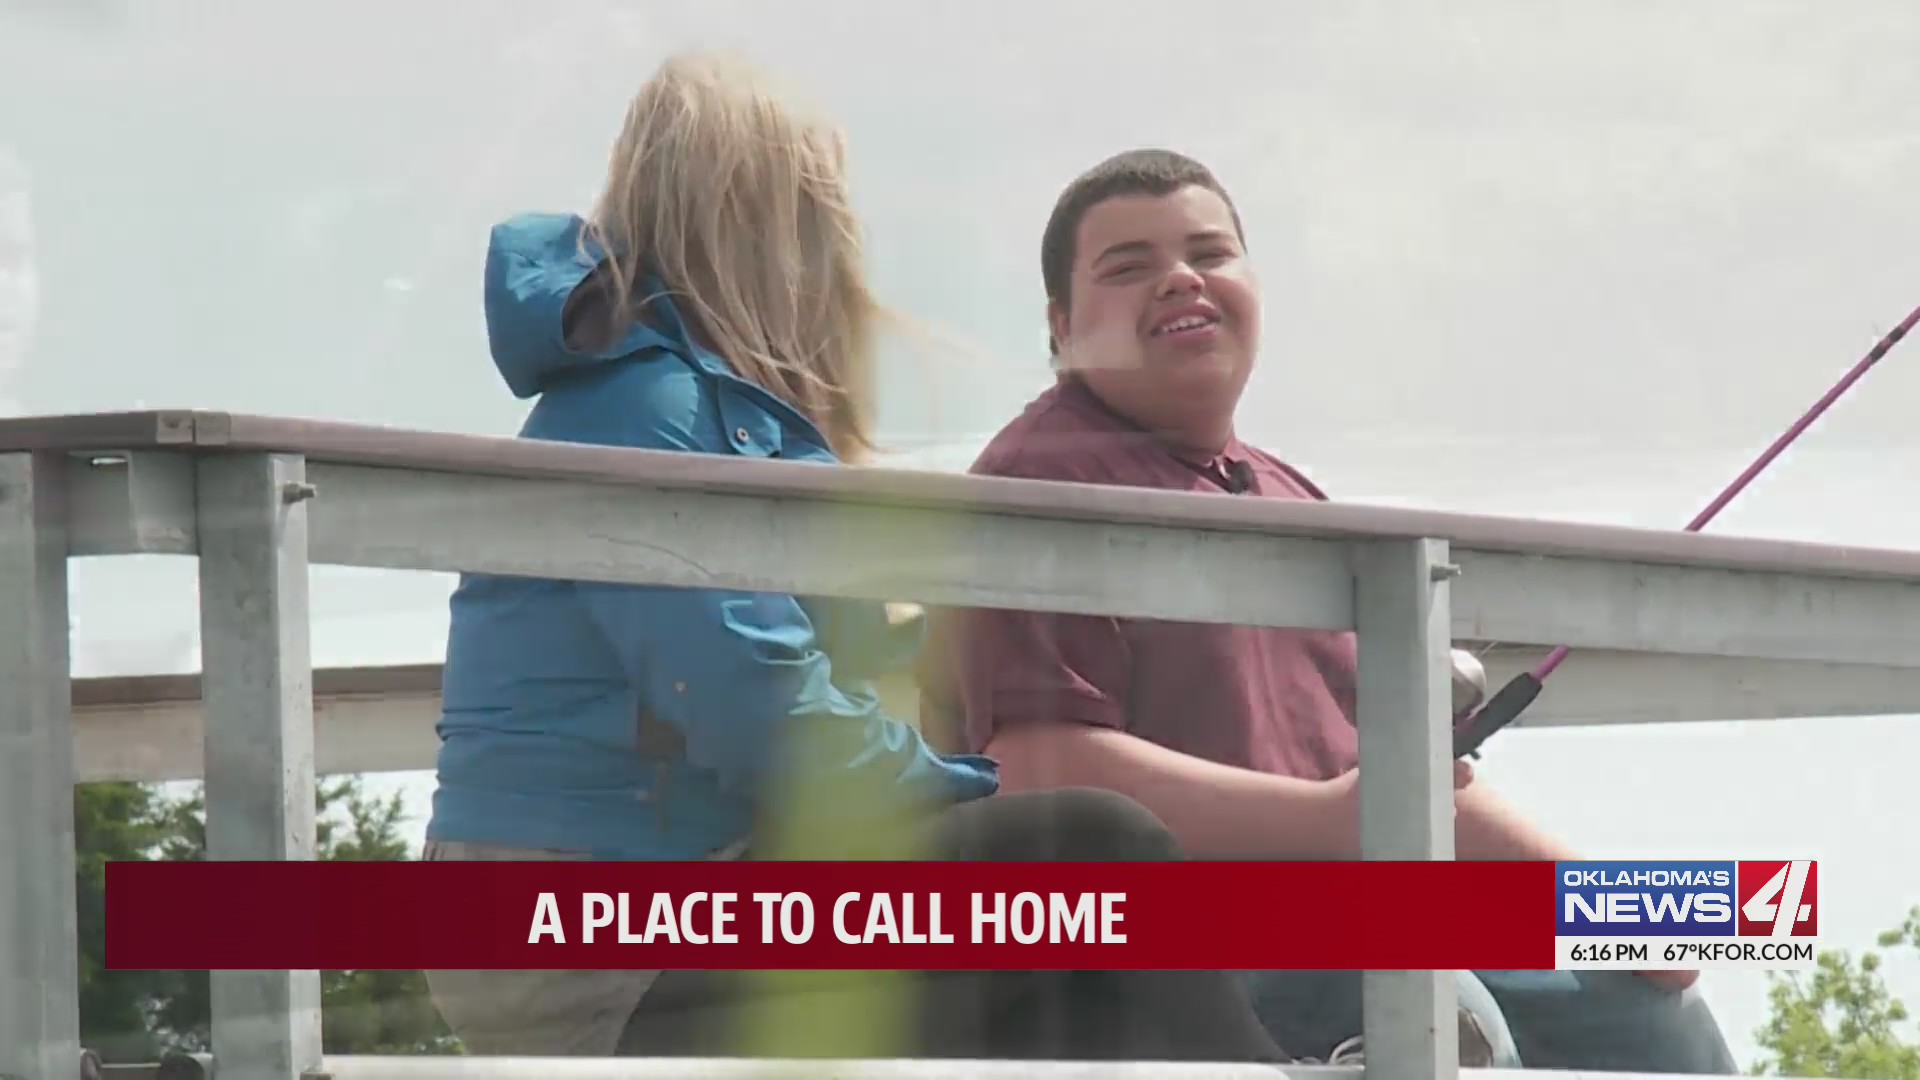 Oklahoma teen continues search for his own place to call home after sister's adoption